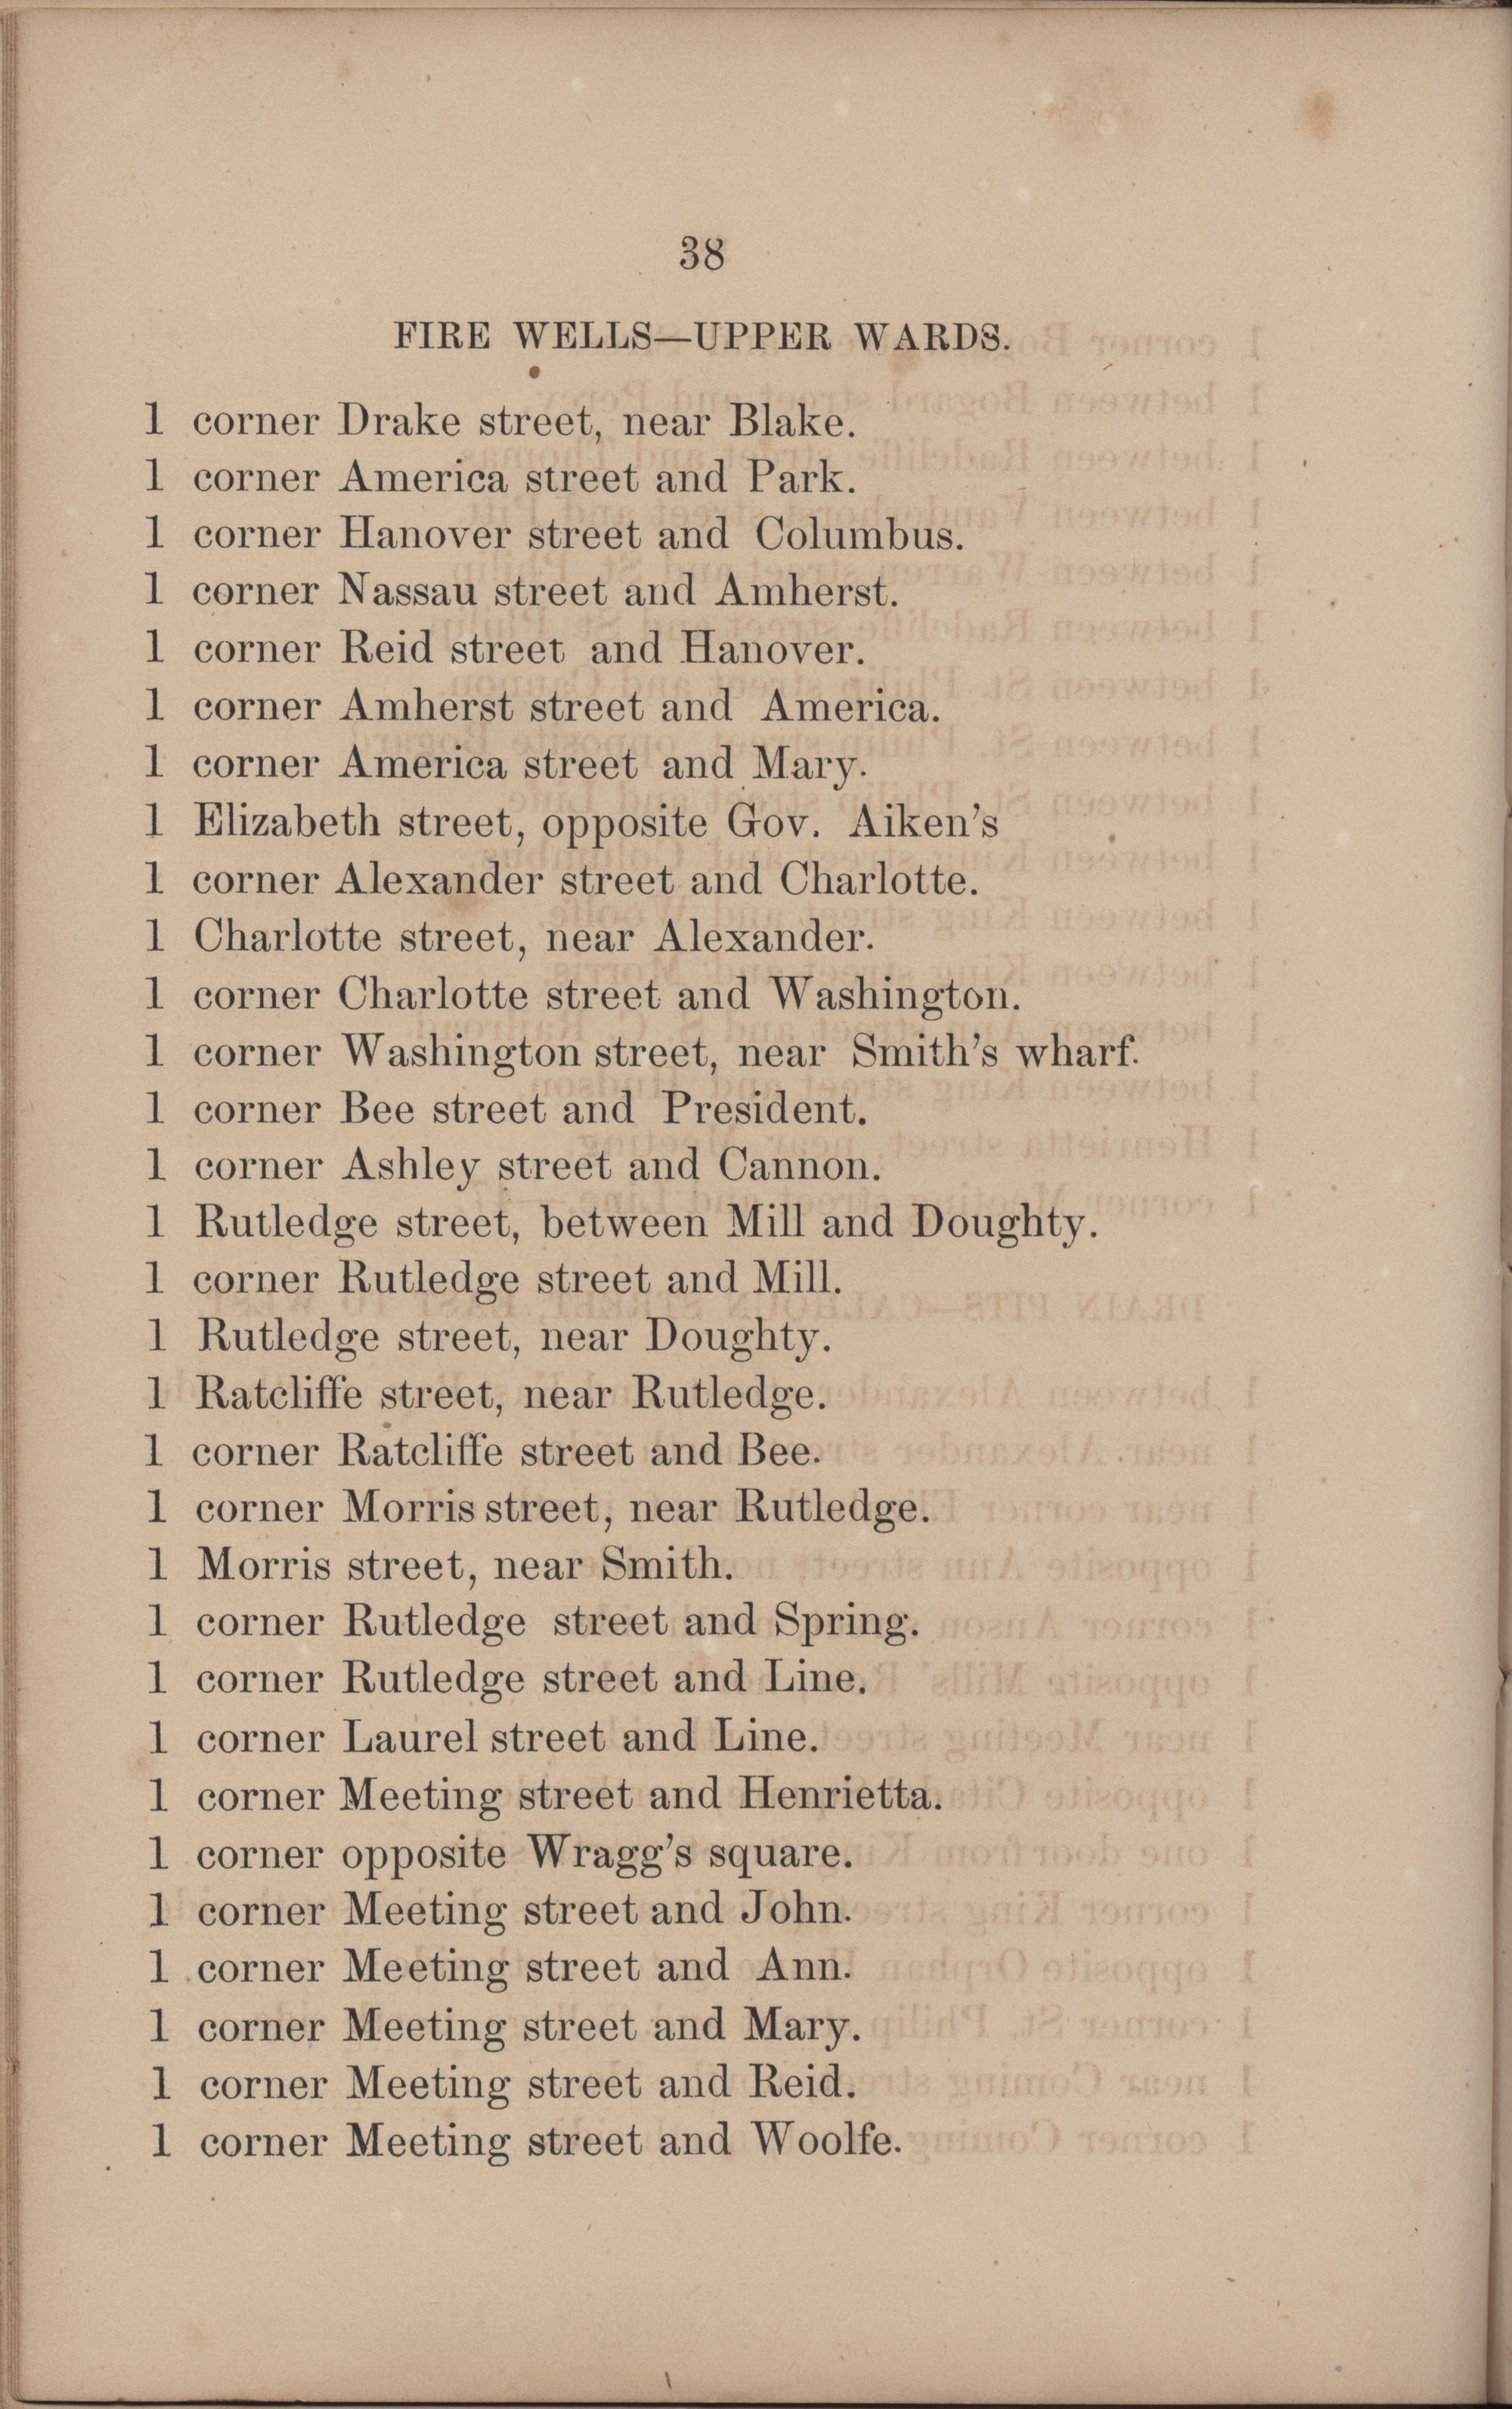 Annual Report of the Chief of the Fire Department of the City of Charleston, page 216